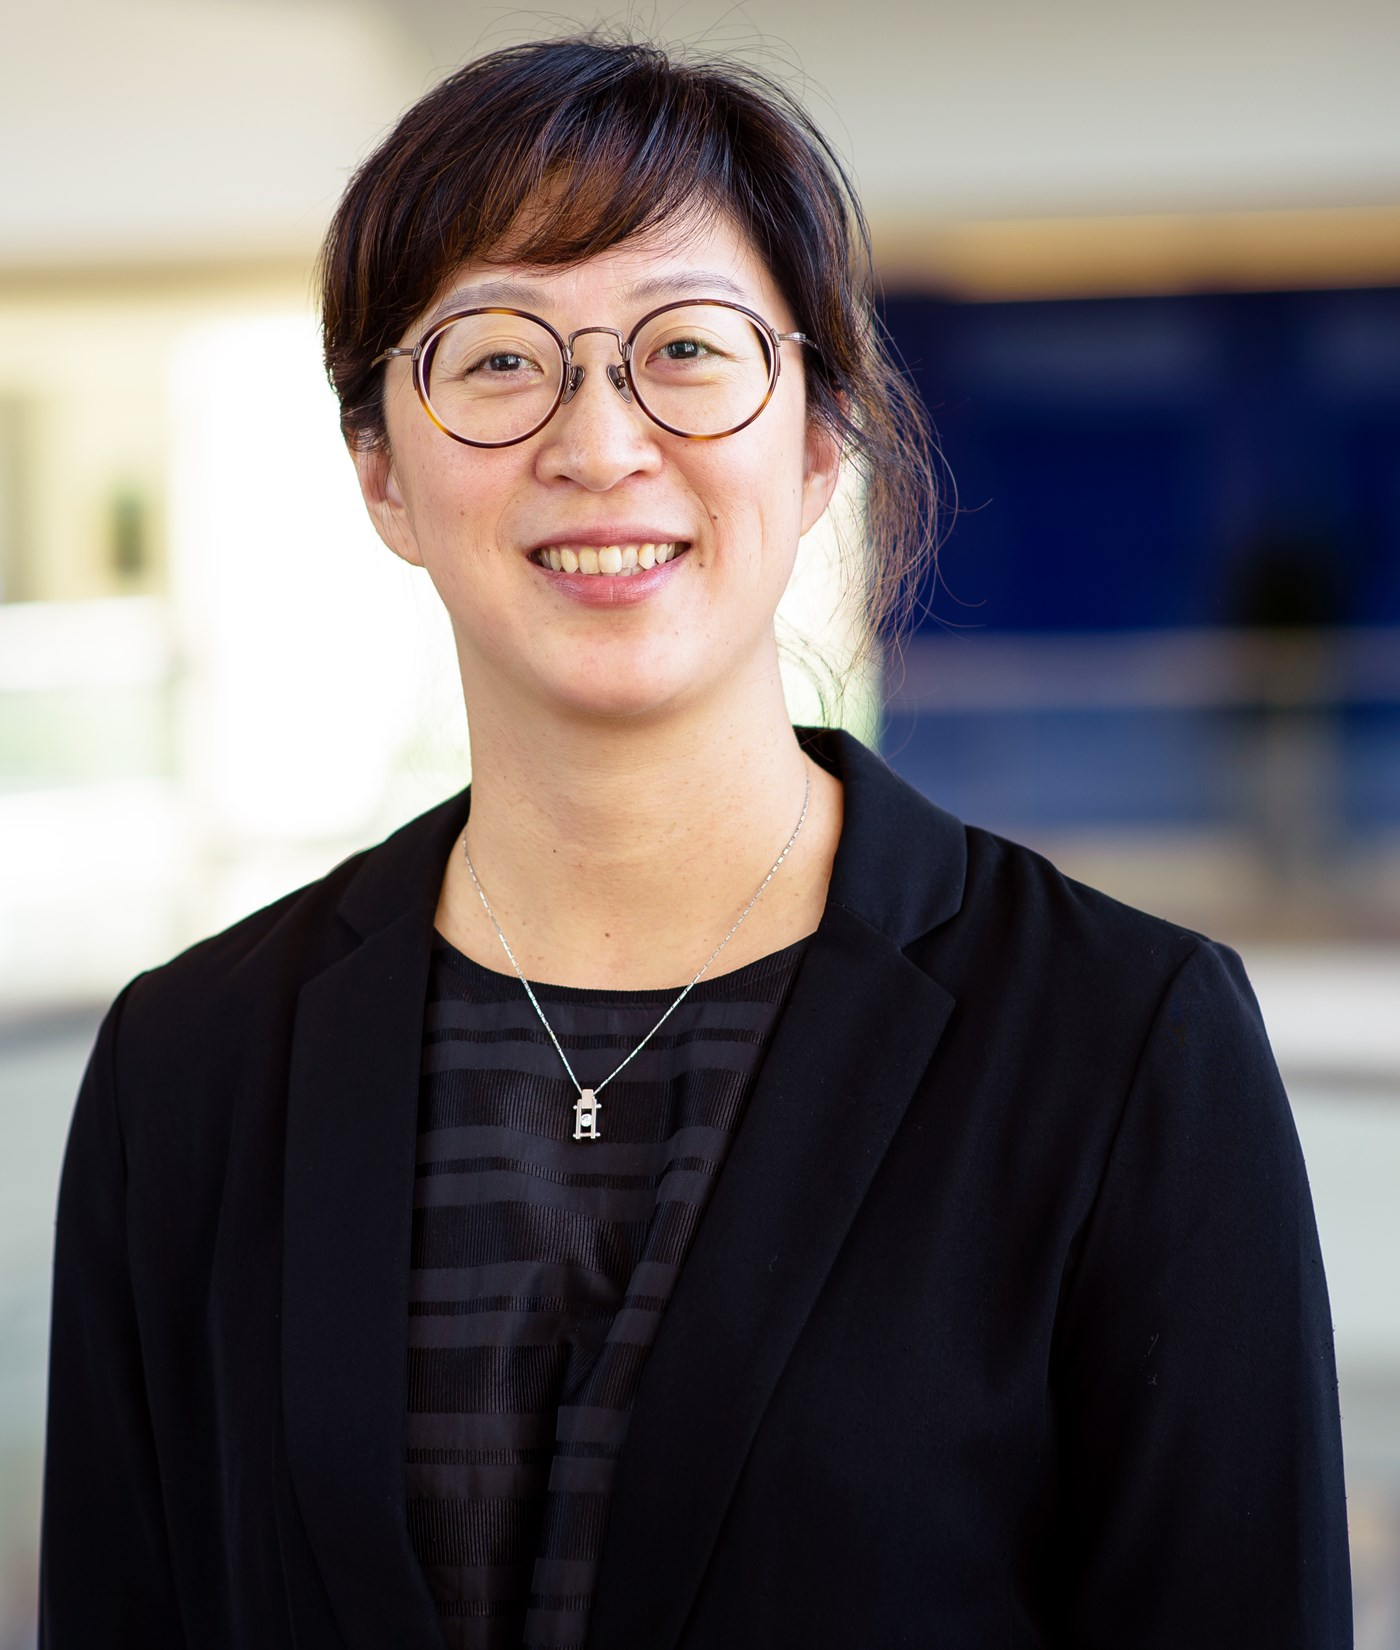 Yi-Ning (Winnie) Wu is an Associate Professor, Scientific Lead in Physiological Measurement at the UMass Lowell NERVE Center